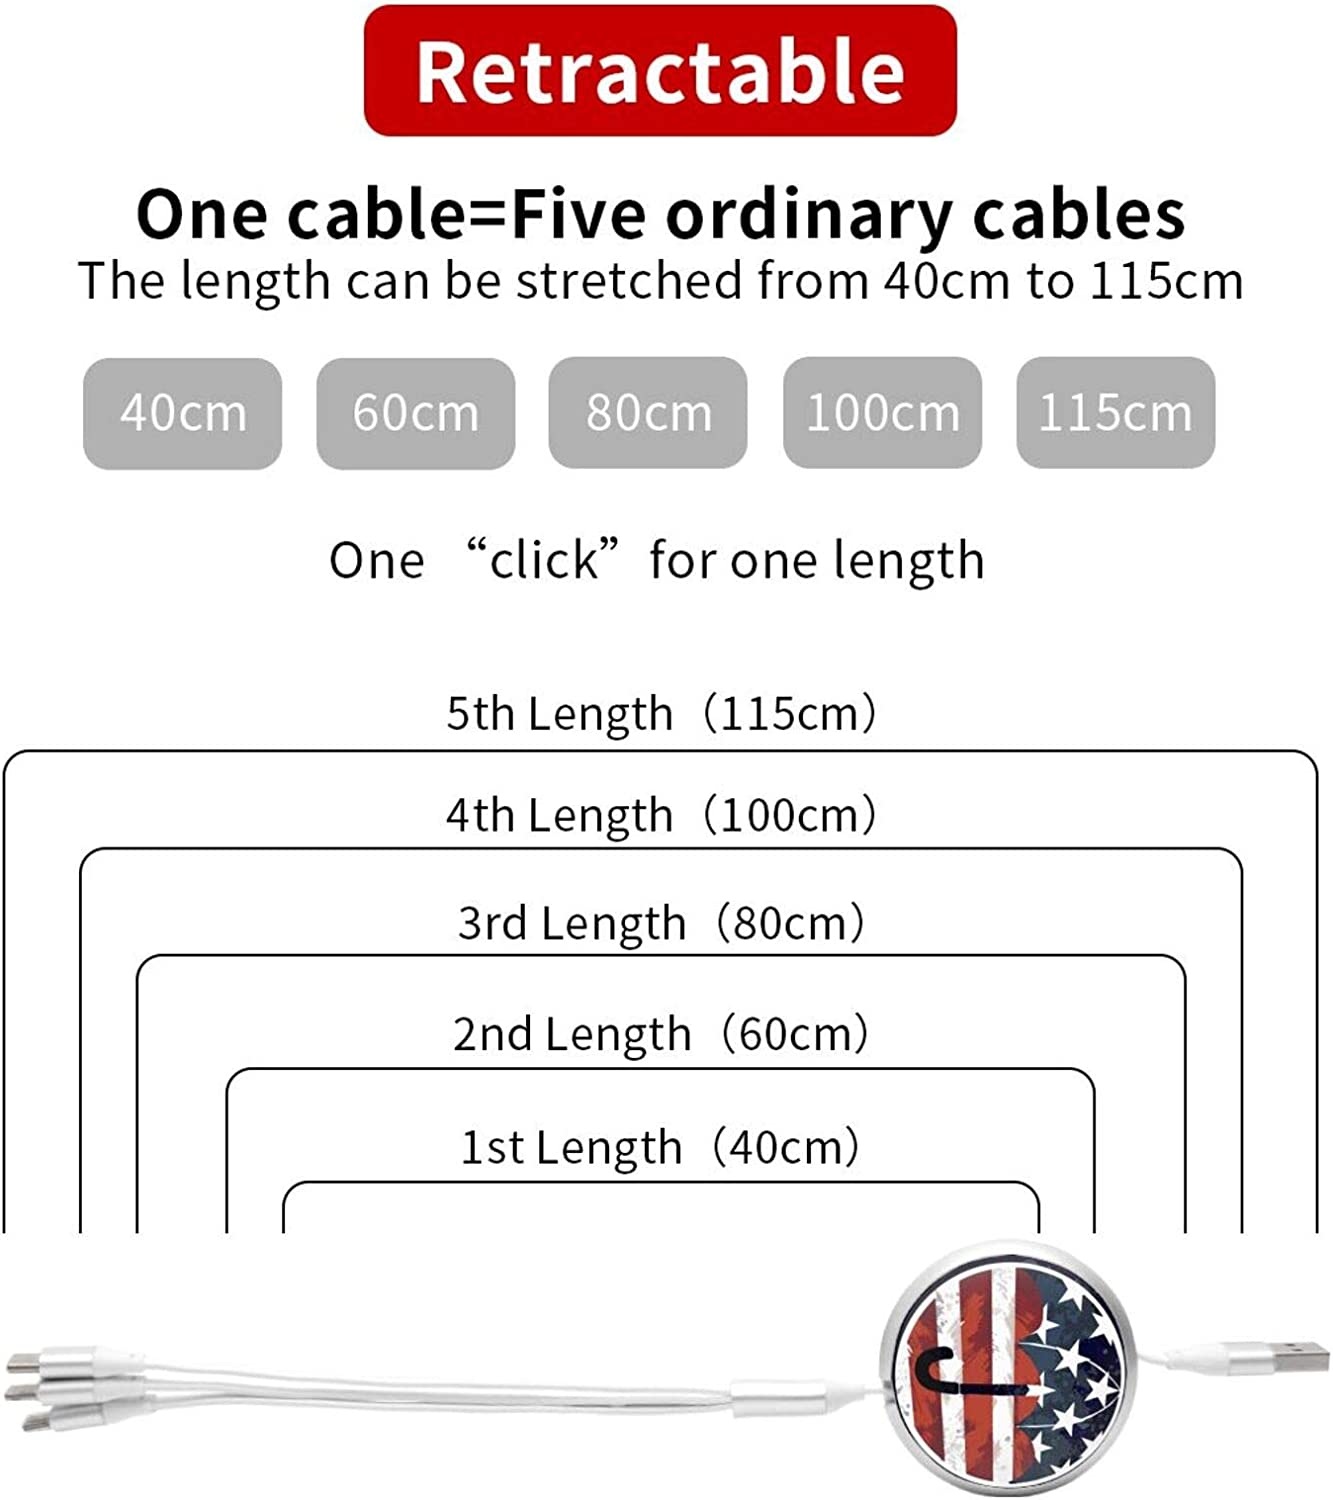 Multi Charger Cable 3 in 1 Charging Cable Universal Charger Cord with Type C//Micro USB Port Compatible with Cell Phone Tablets More SEDSED The Umbrella Academy Multi Charging Cable